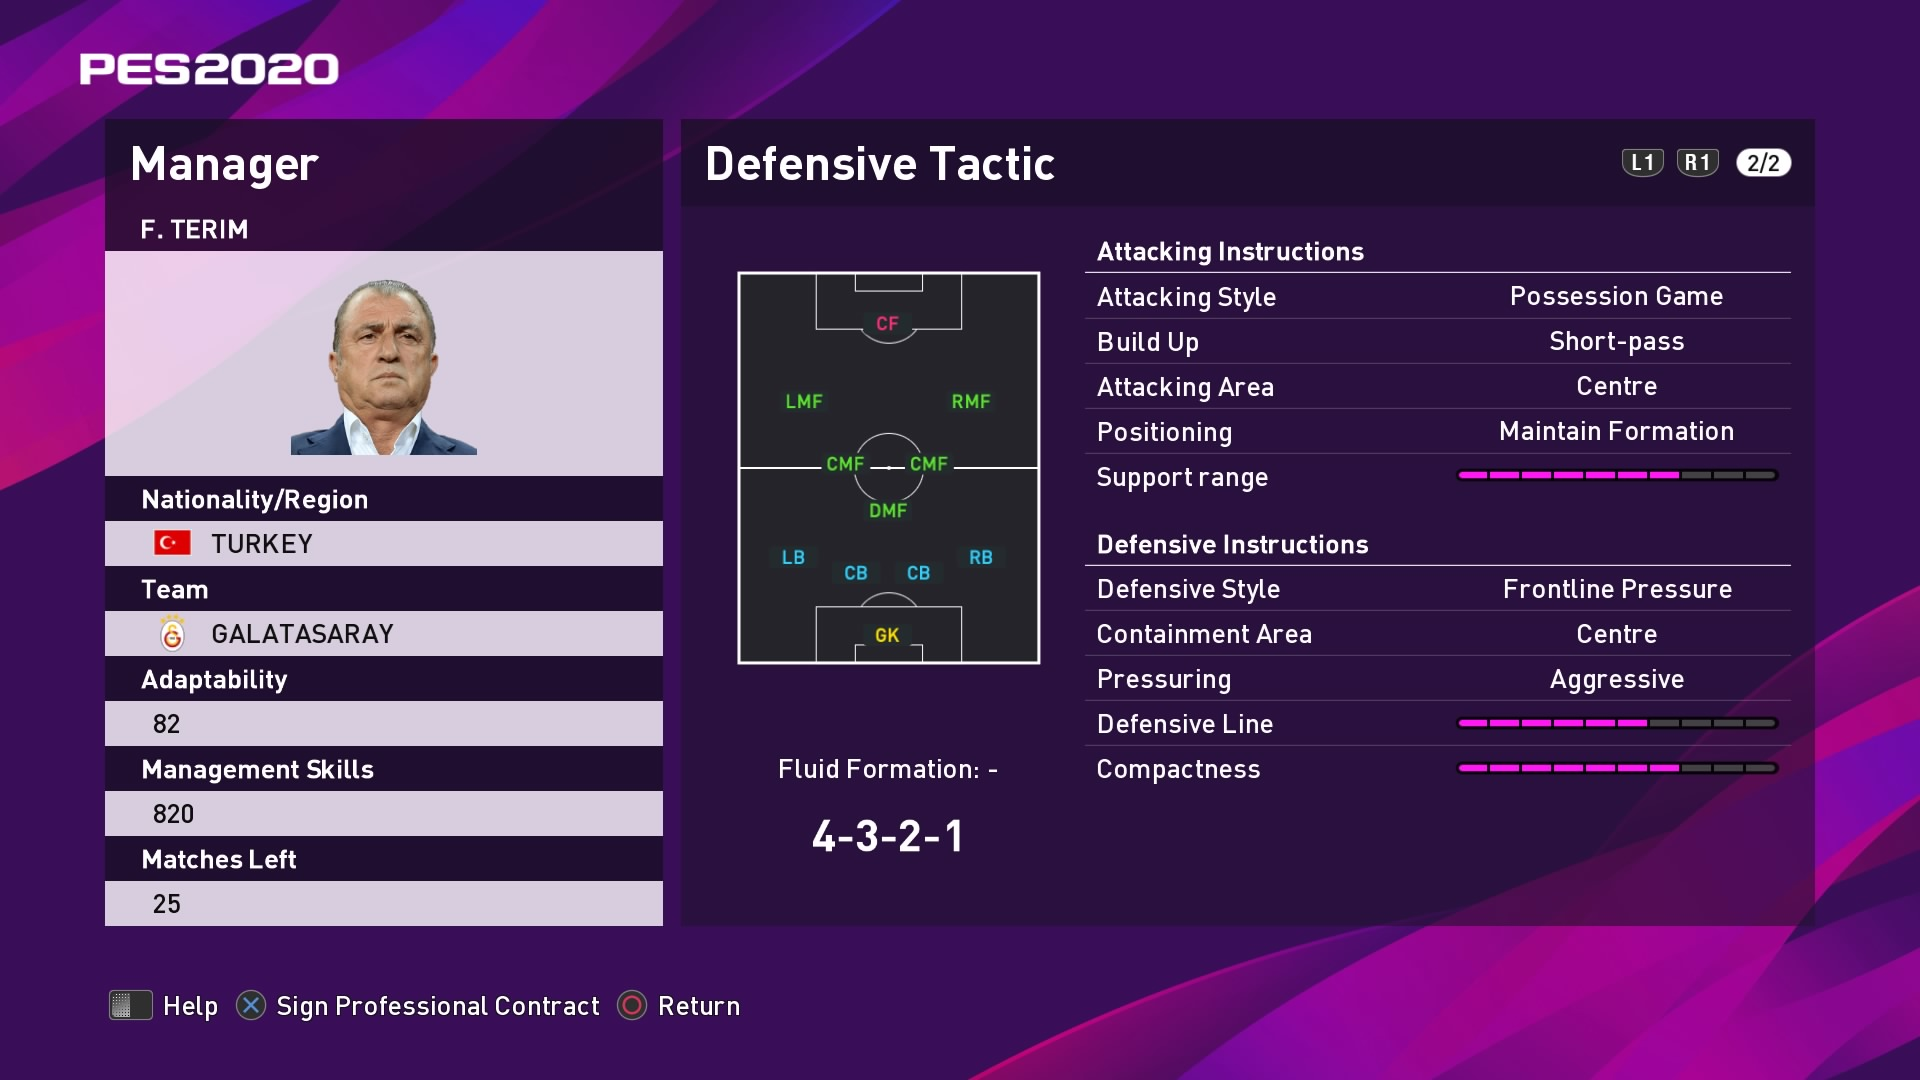 F. Terim (Fatih Terim) Defensive Tactic in PES 2020 myClub